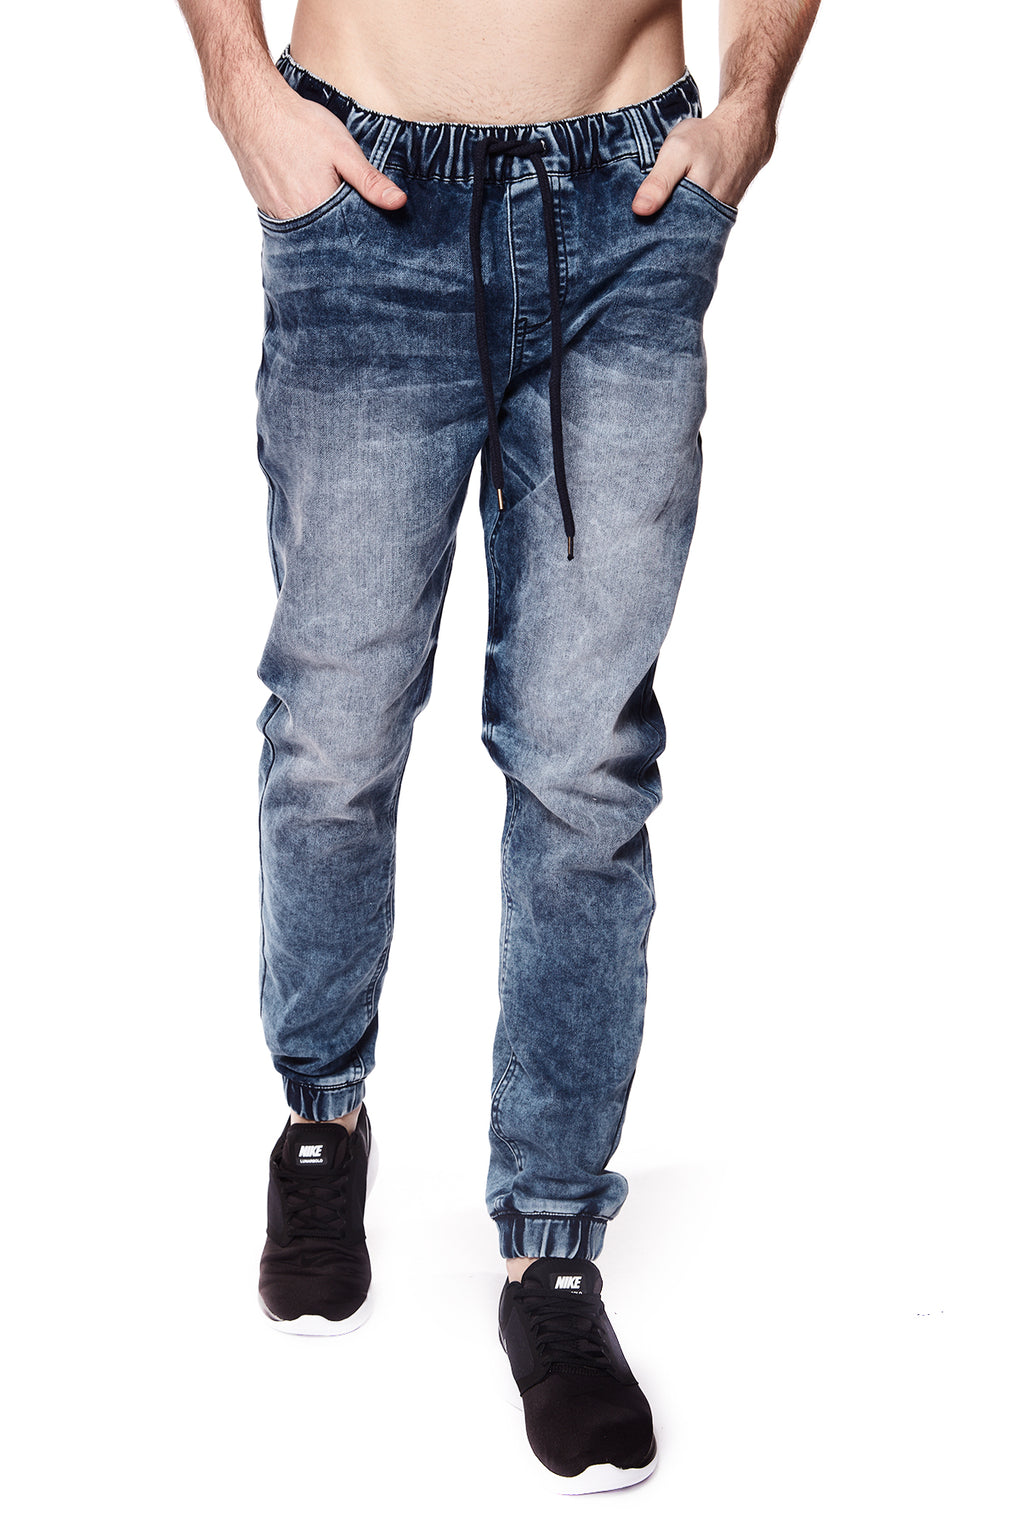 JAGGER - 5 Pocket Knit Denim Classic Jogger (JAGGER-JRS)